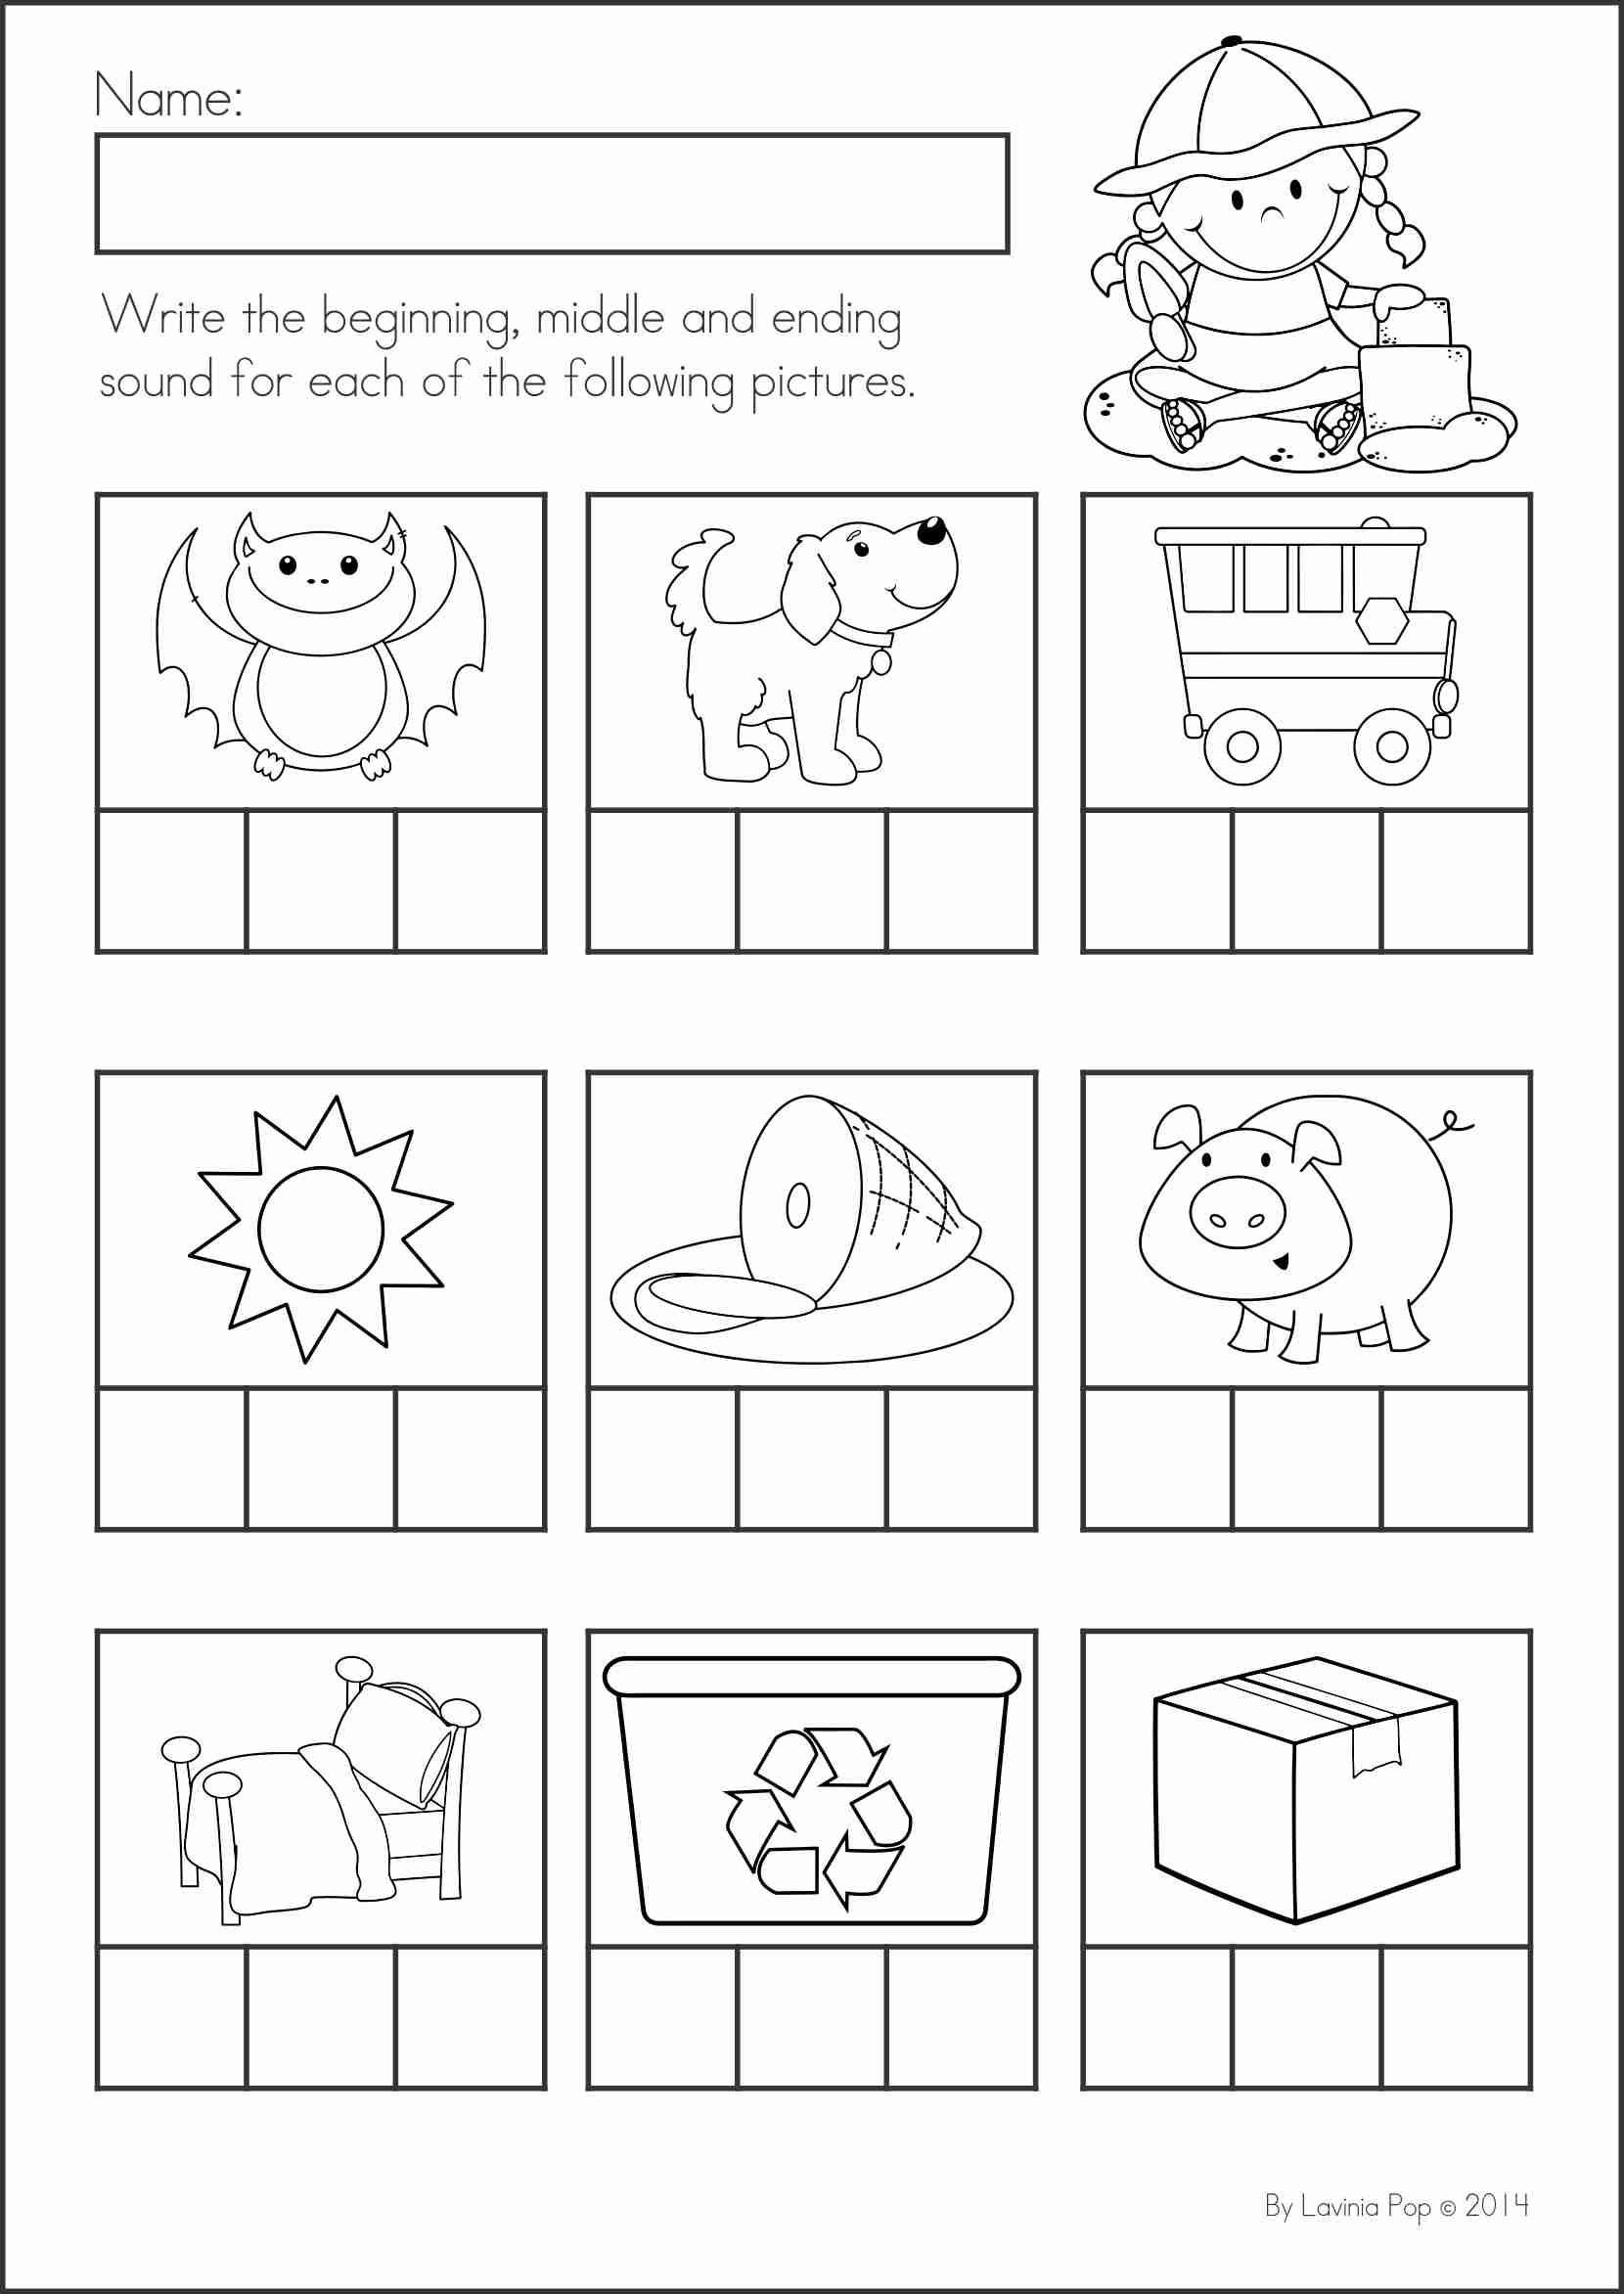 Free Printable Cvc Worksheets Unique Writing Cvc Words Worksheet